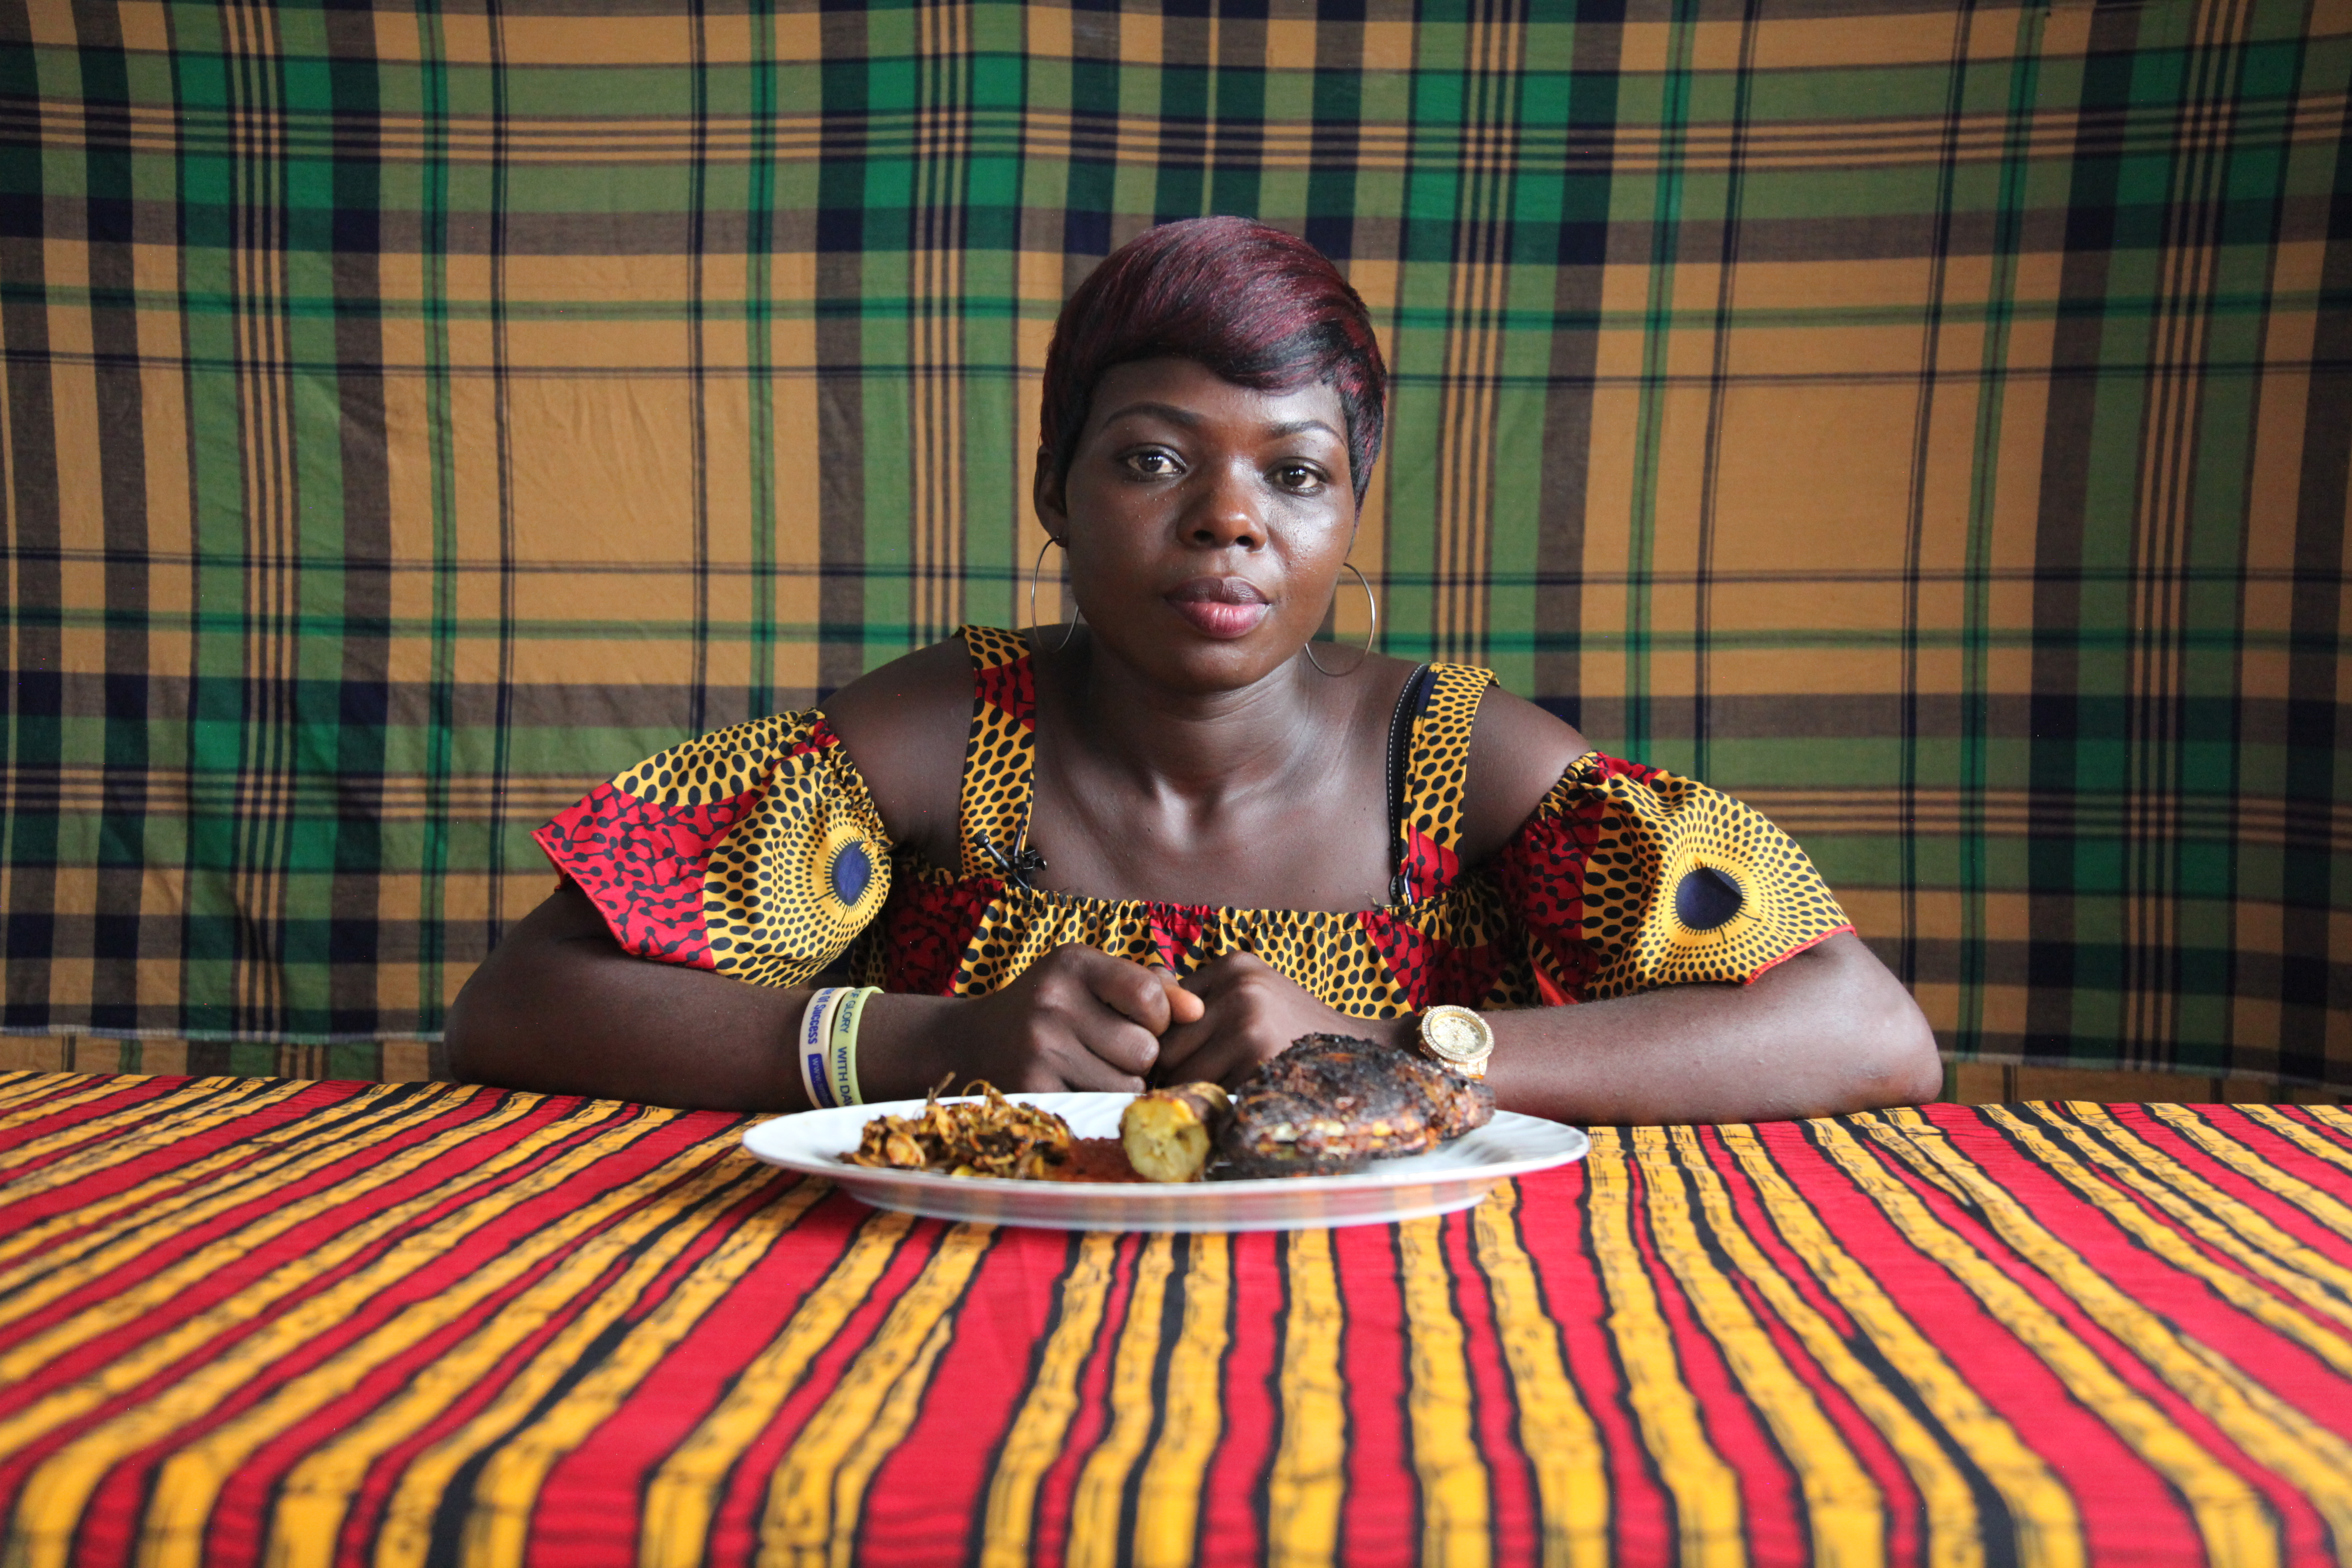 Zina Saro-Wiwa, <i>Table Manners (Season 2): Precious Eats Boli & Fish with Oil Bean</i>, 2019. Cortesia de Zina Saro-Wiwa e Tiwani Contemporary